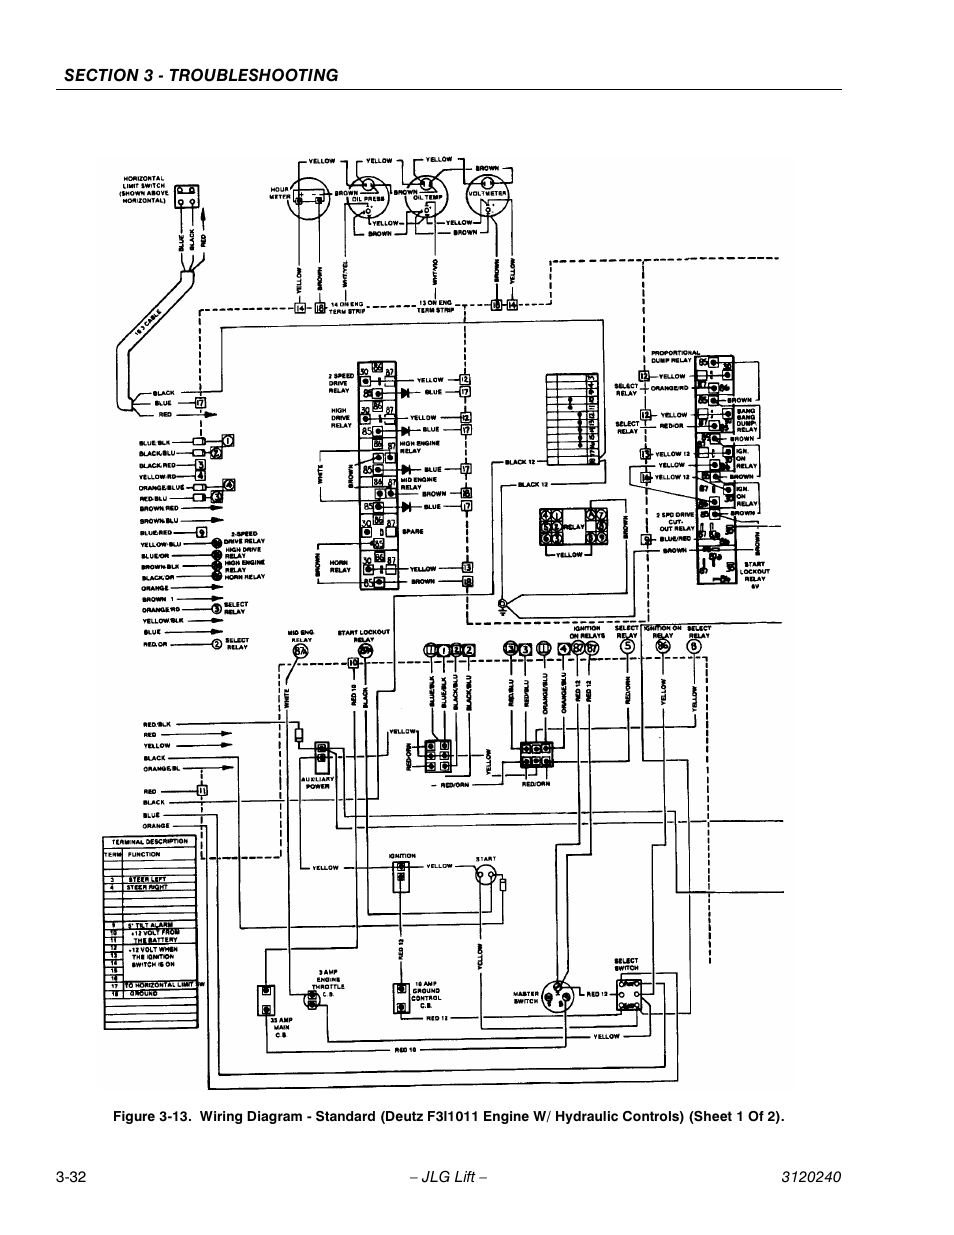 jlg 40h service manual page144 jlg 40h service manual user manual page 144 152 jlg 40h wiring diagram at honlapkeszites.co